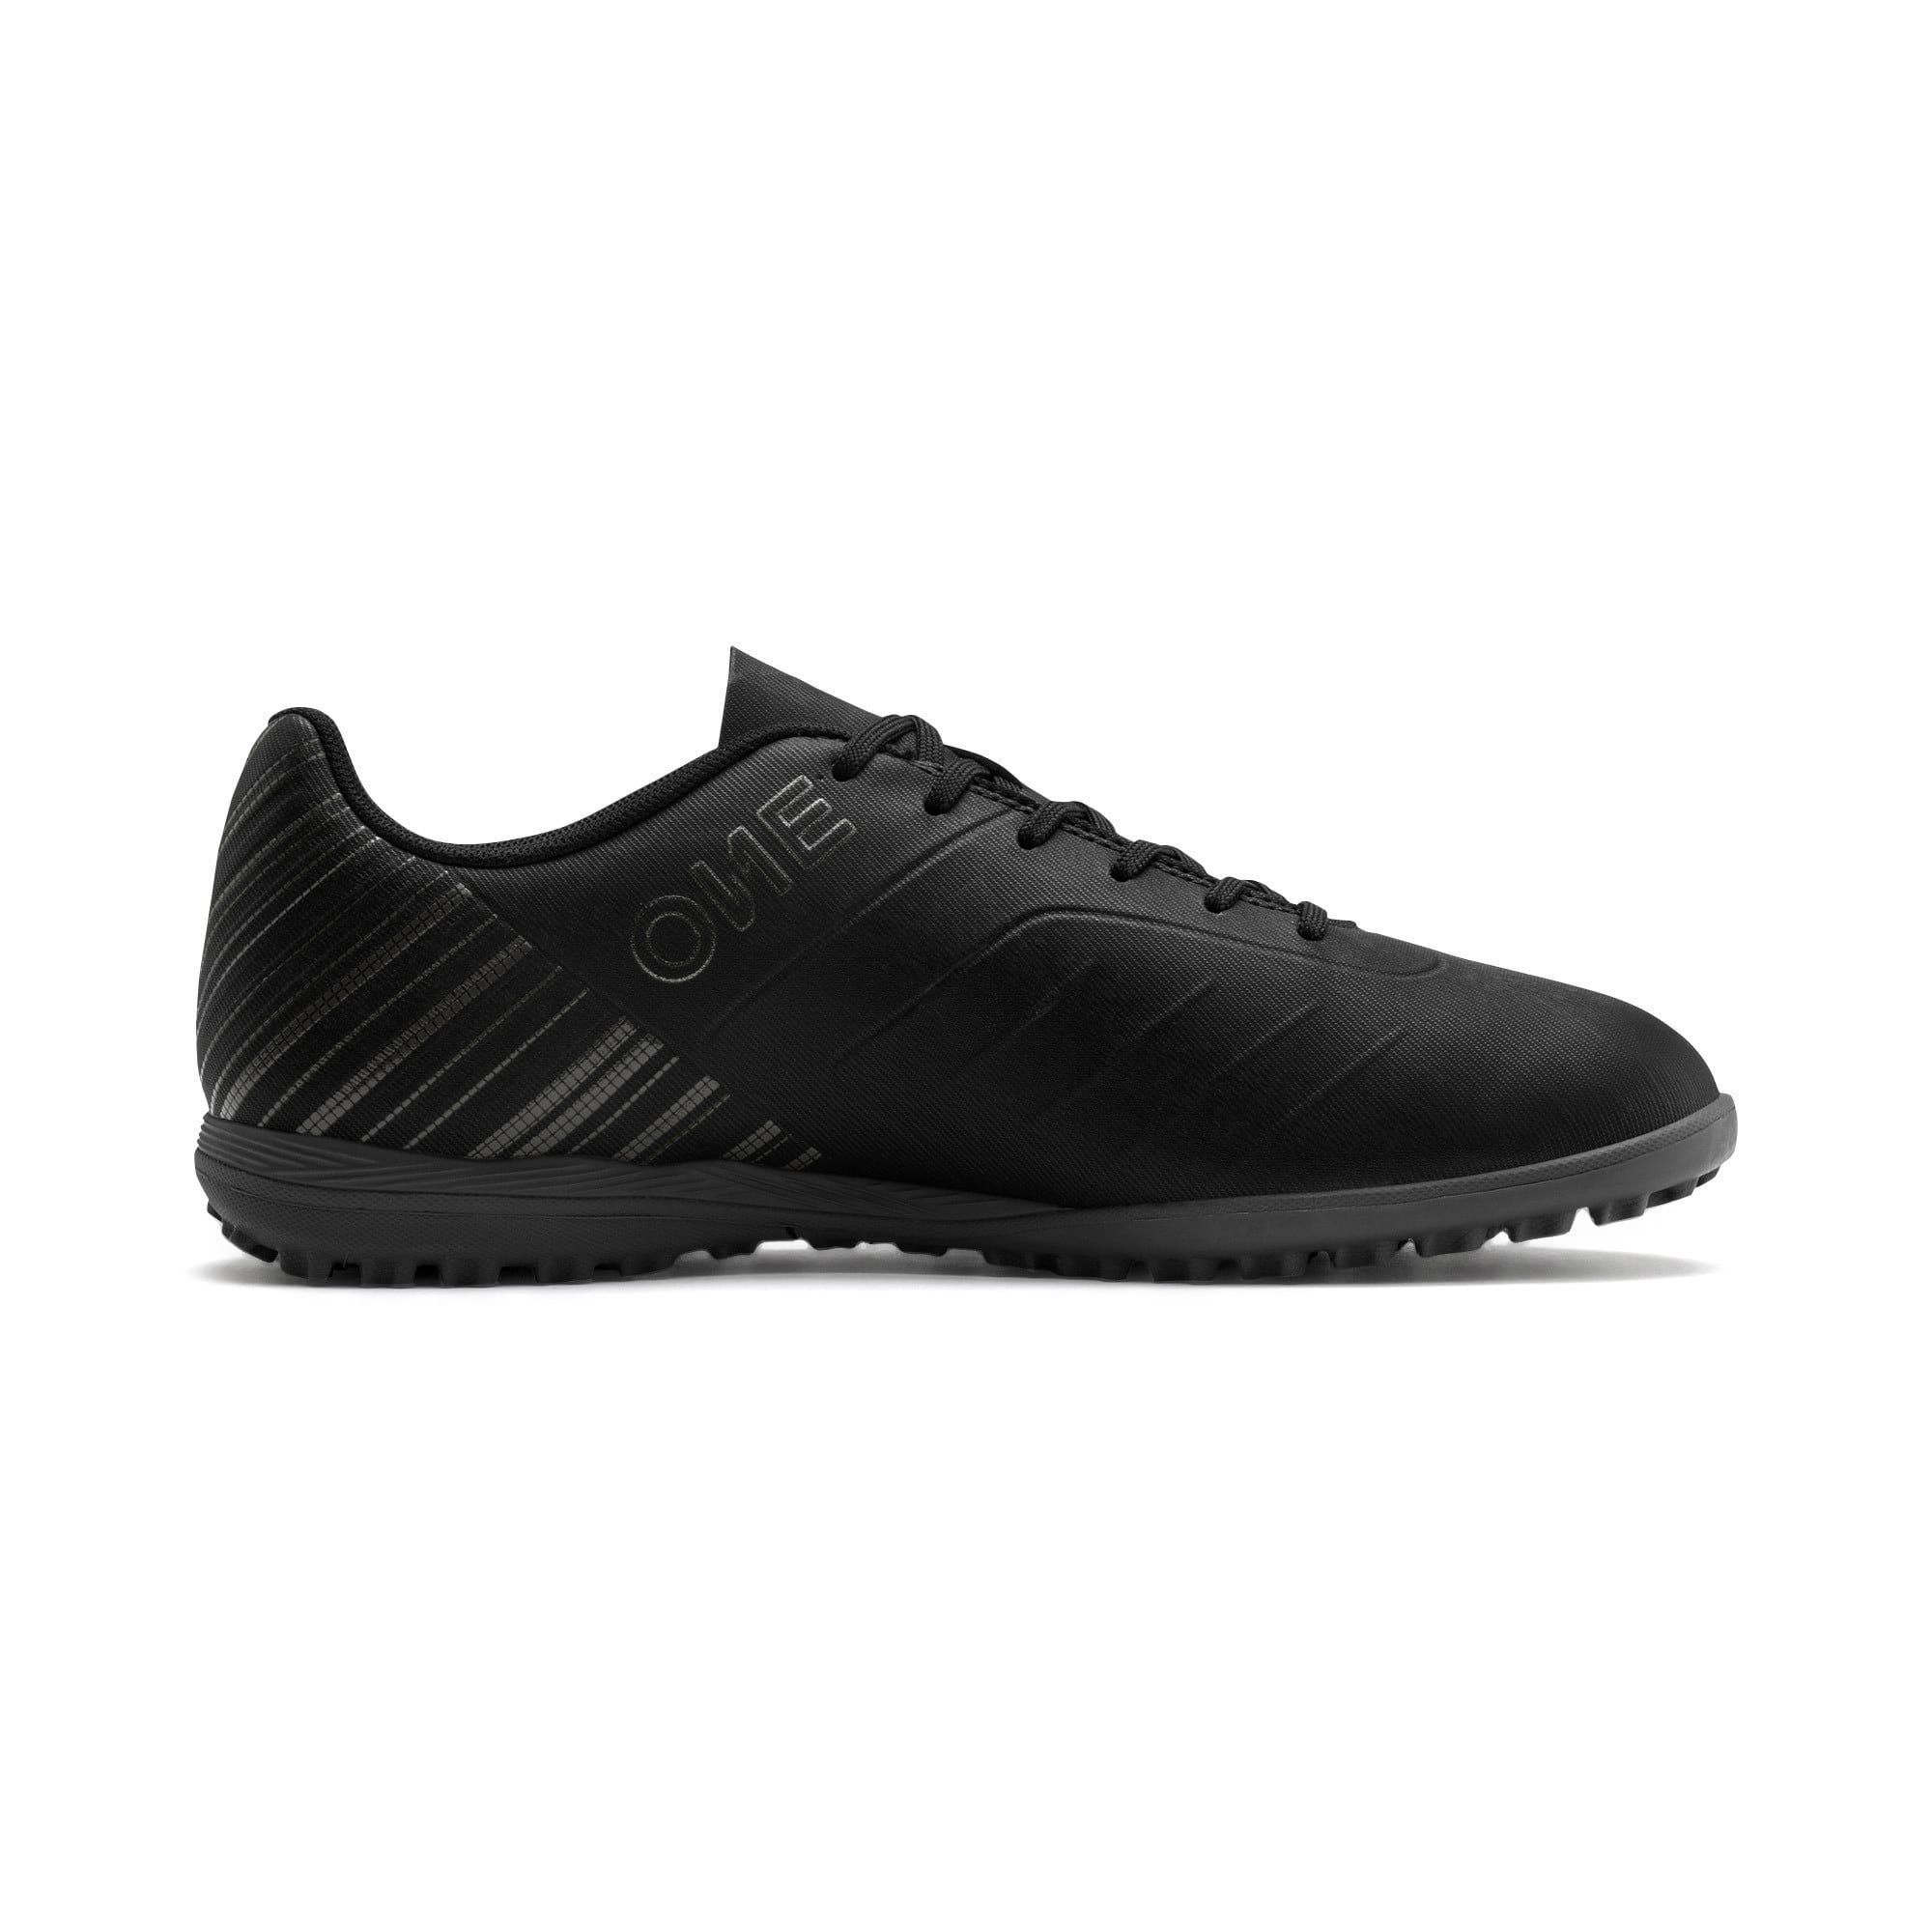 Thumbnail 6 of PUMA ONE 5.4 TT Men's Football Boots, Black-Black-Puma Aged Silver, medium